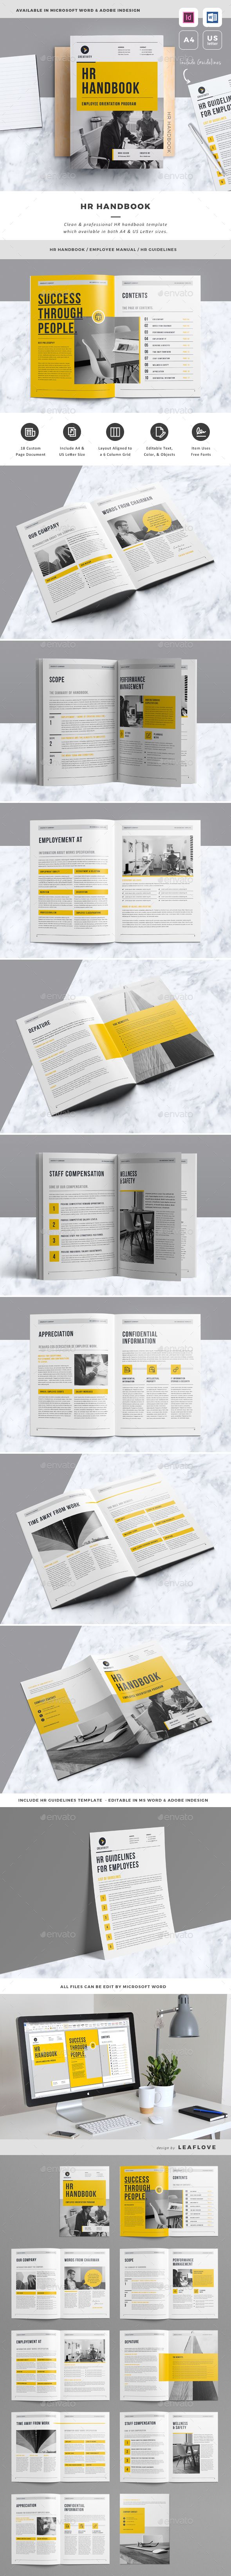 HR Handbook - Informational #Brochures Download here: https://graphicriver.net/item/hr-handbook/19461339?ref=alena994